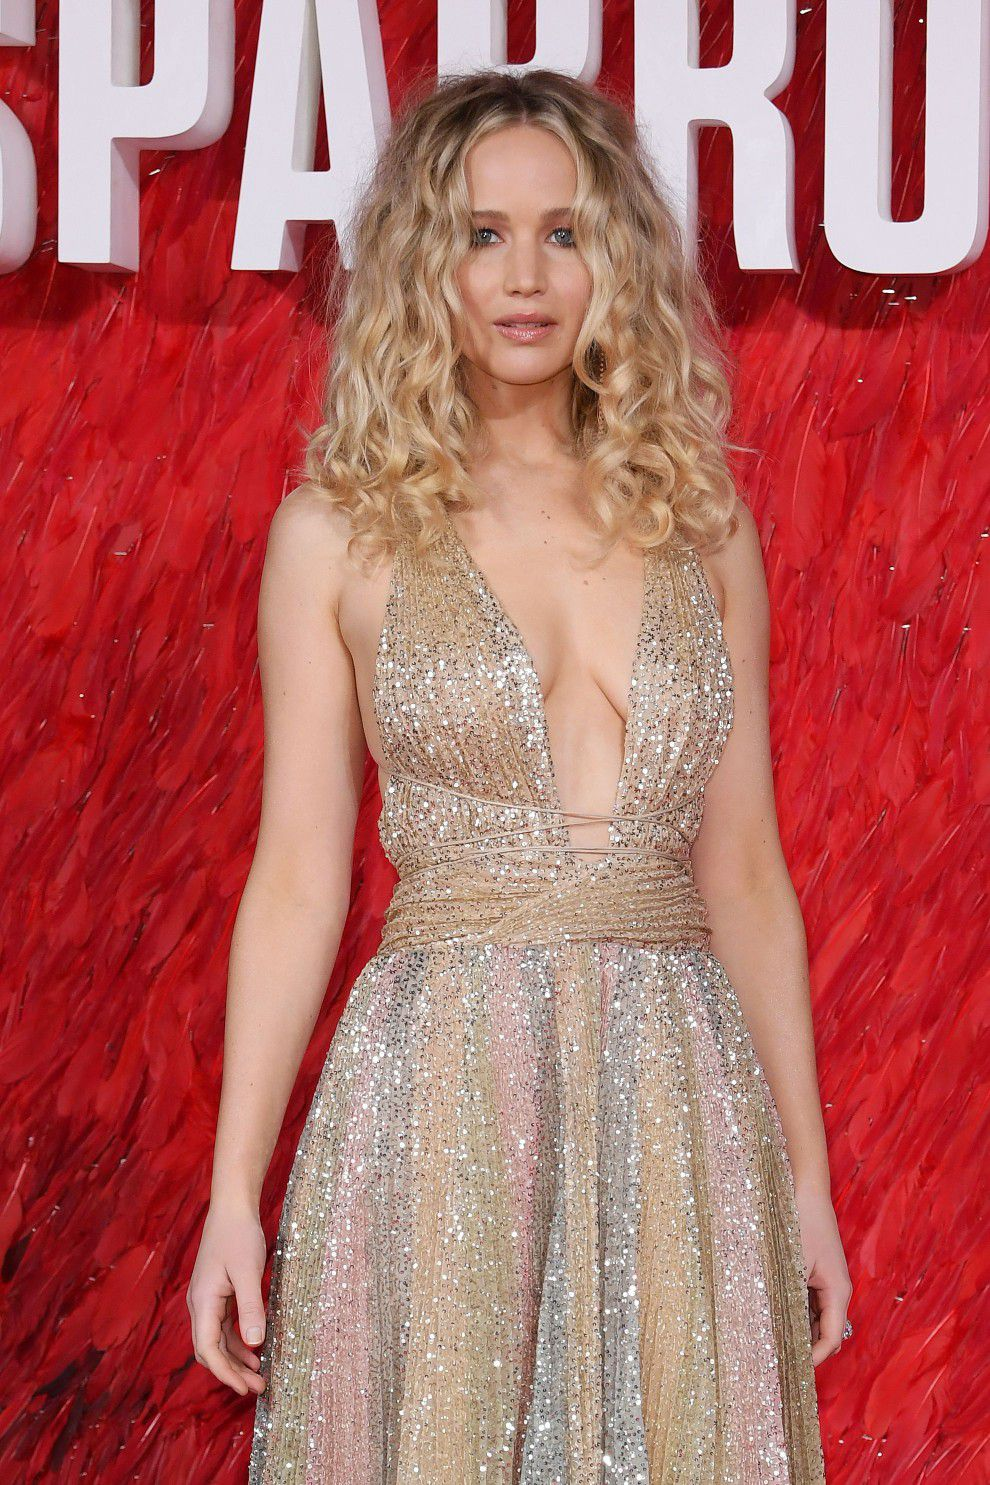 jennifer-lawrence-cleavage-at-red-sparrow-premiere-in-london-7179